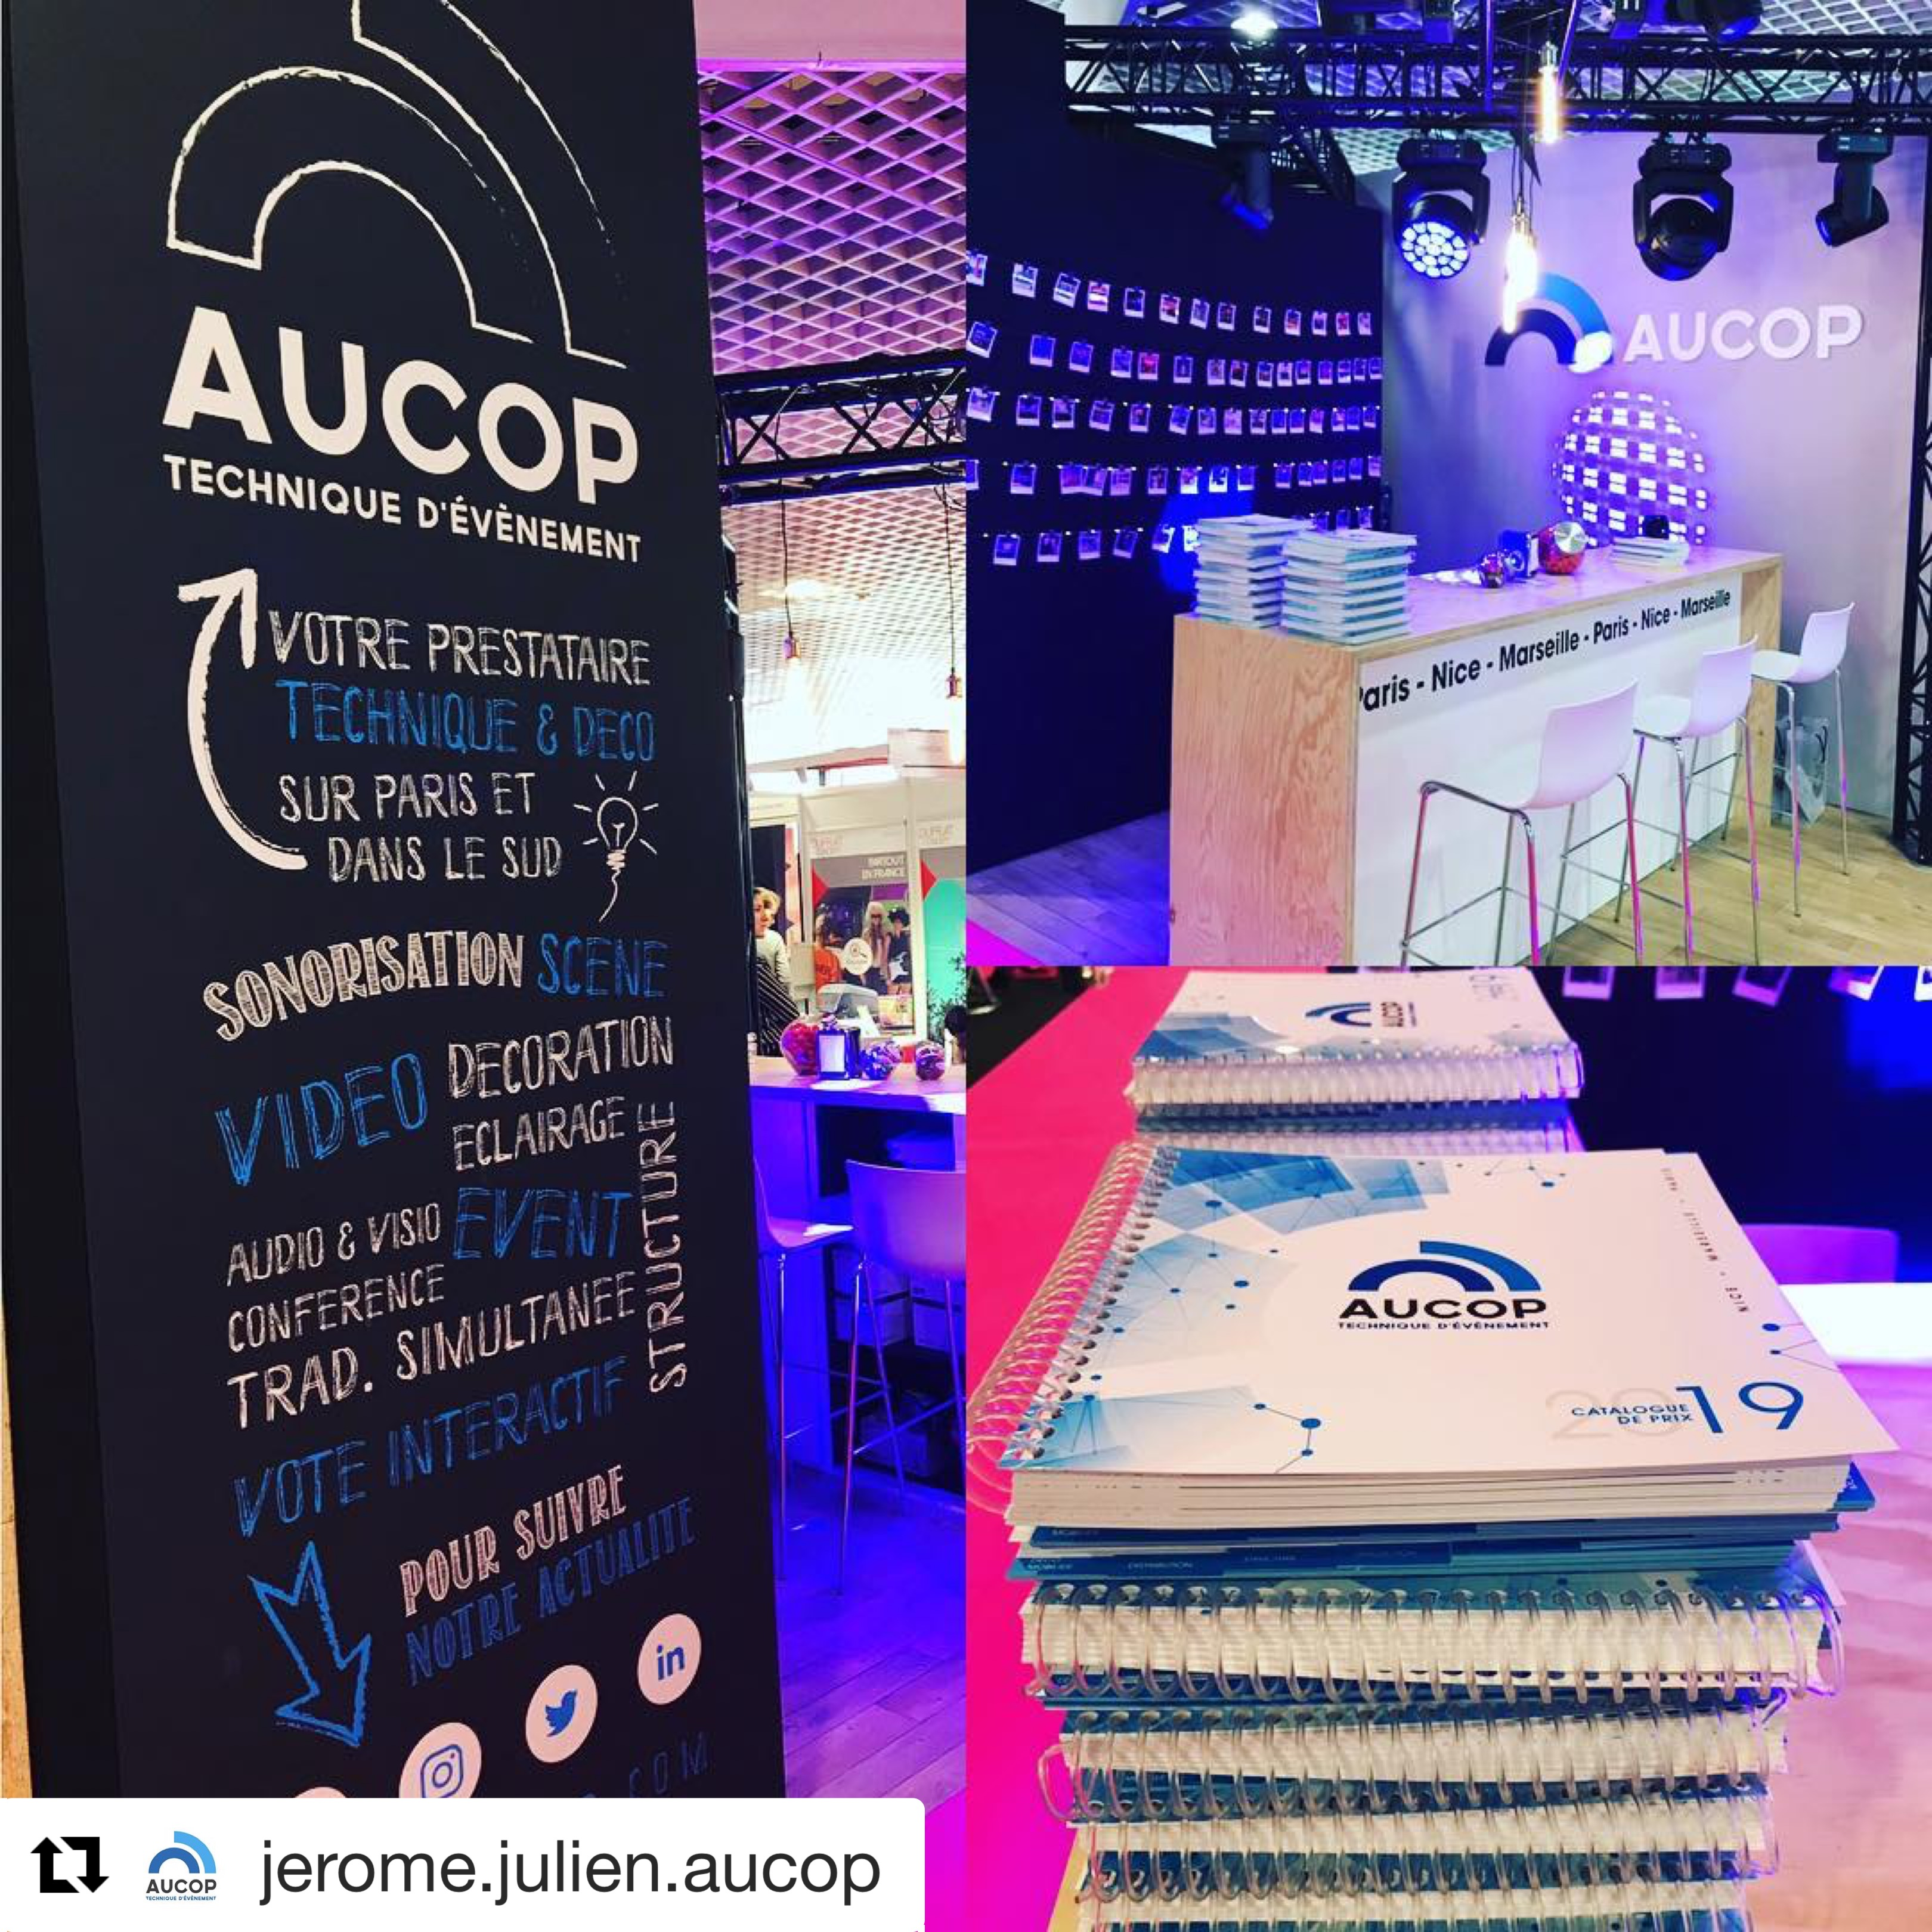 Heavent Meetings '19-aucop-event-evenementiel-location-audiovisuel-prestataire-technique d evement-nice-paris-marseille-cannes-sonorisation-eclairage-deco-video-traduction simultanee